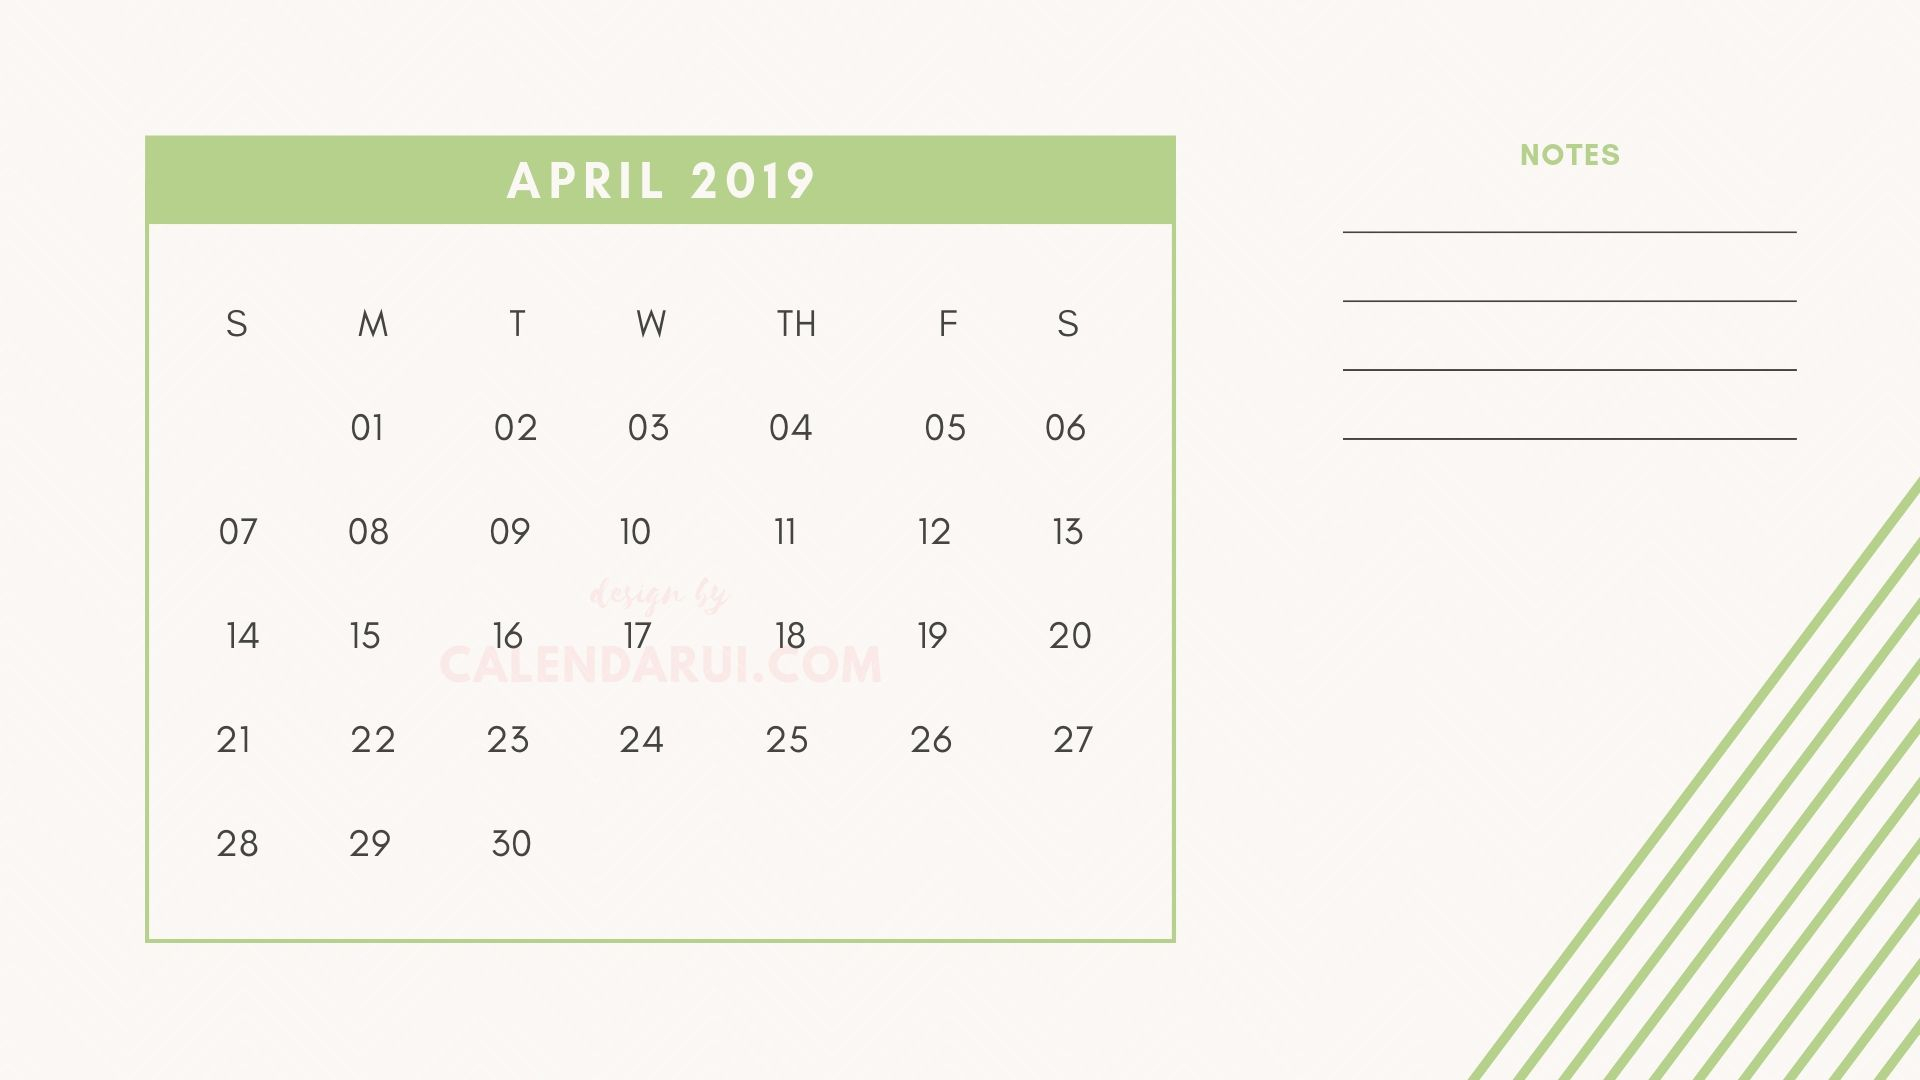 4 April Printable Mini Calendar 2019 Template With Notes with regard to Mini Calendar Template